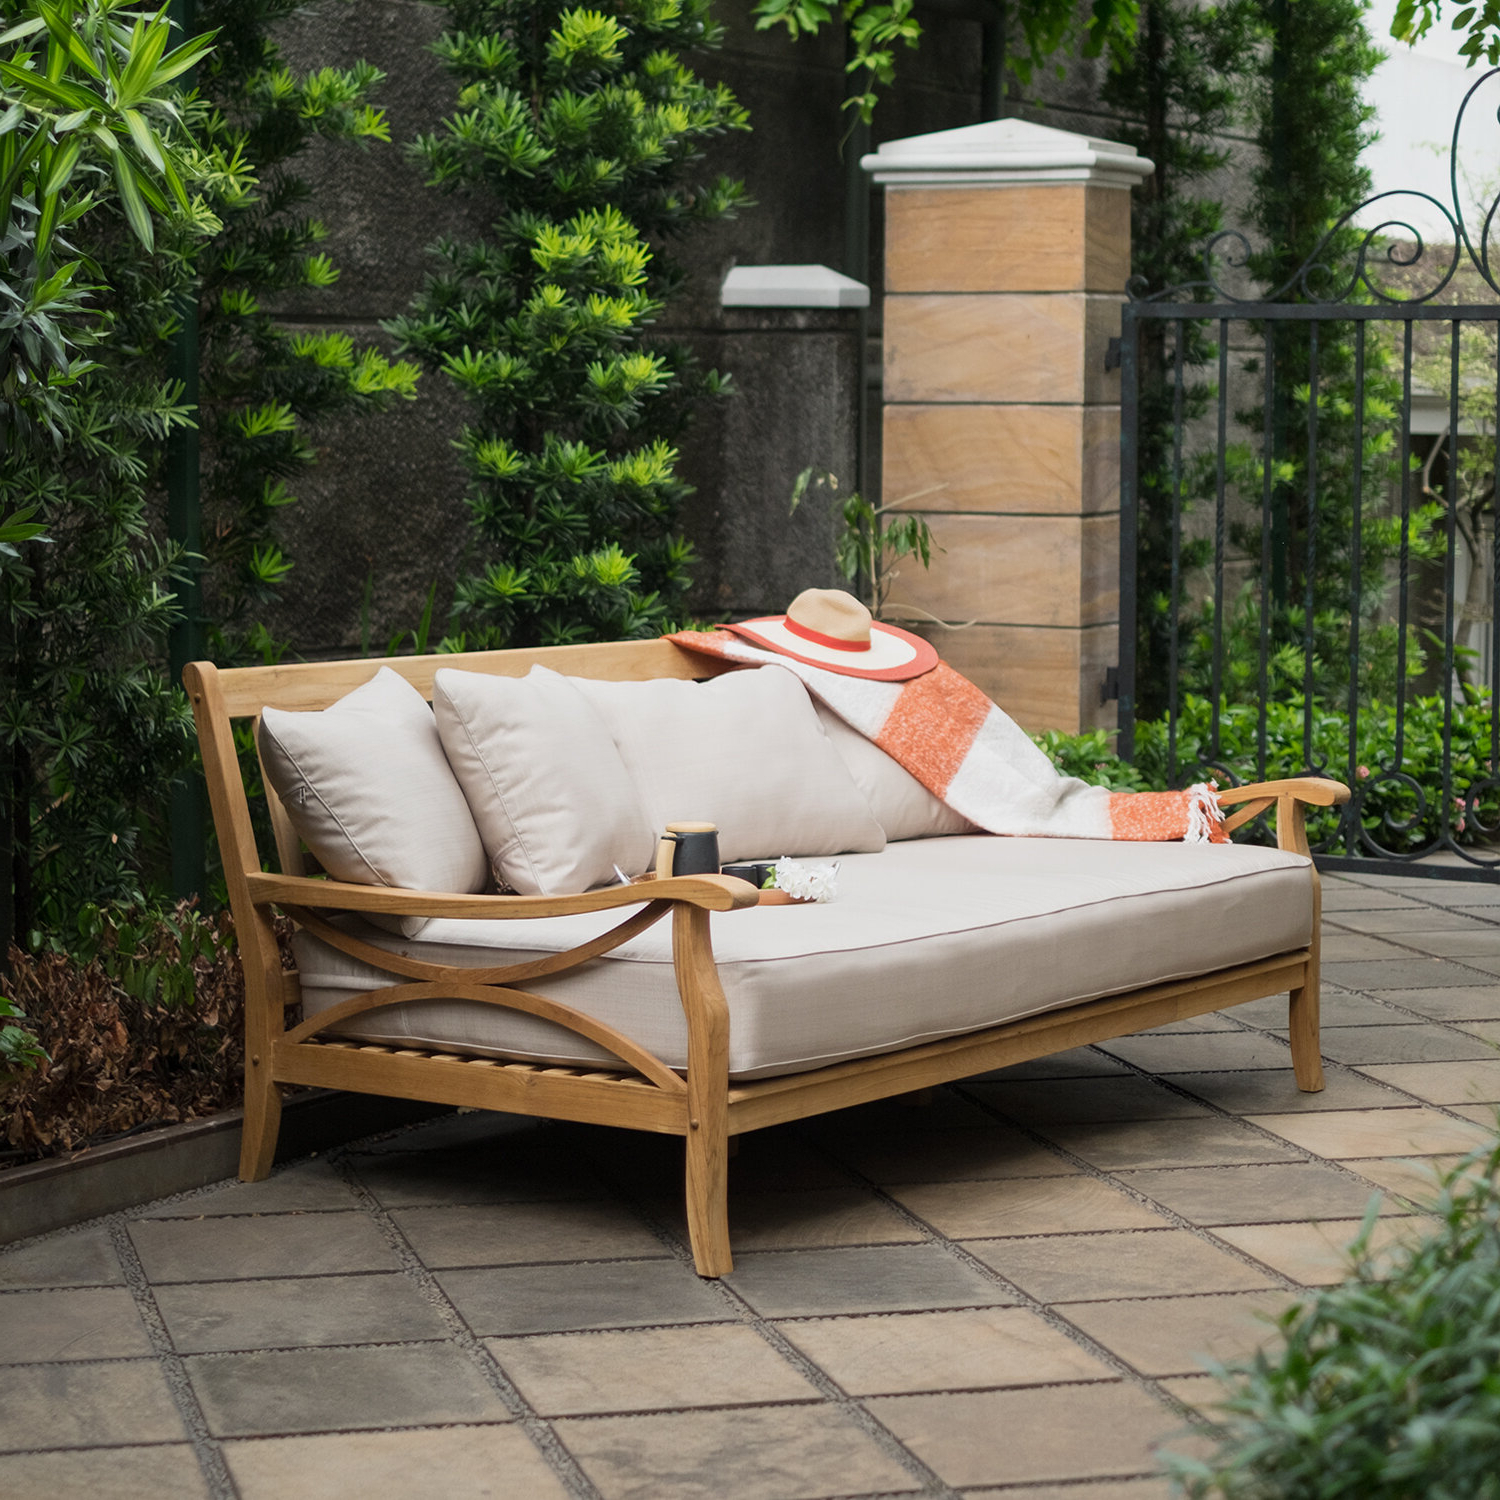 Best And Newest Beal Patio Daybeds With Cushions With Regard To Brunswick Teak Patio Daybed With Cushions (Gallery 15 of 25)